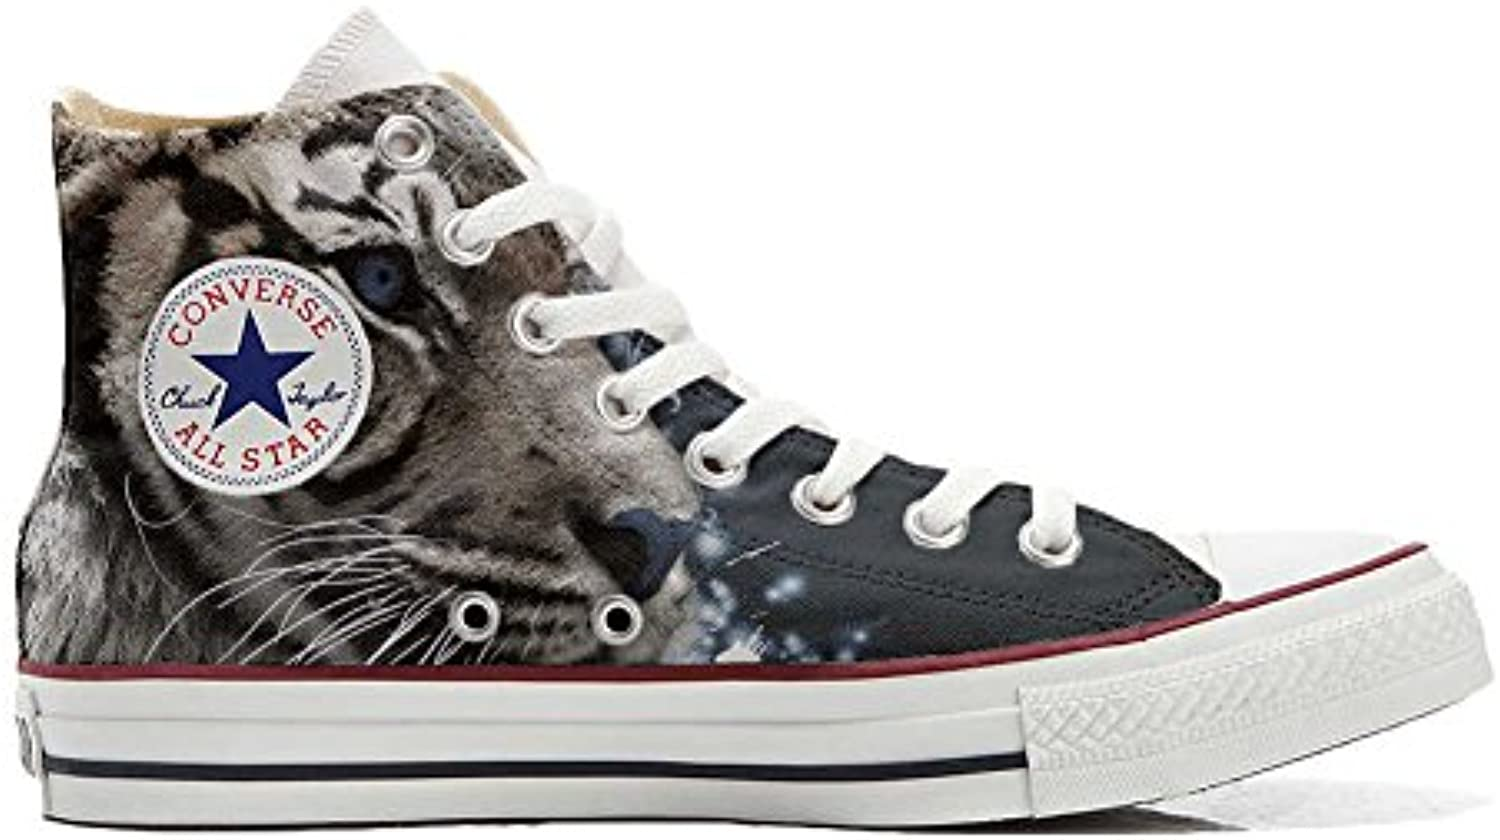 Converse All Star Personalisierte Schuhe   Handmade Shoes   mit Tigre BIANCA